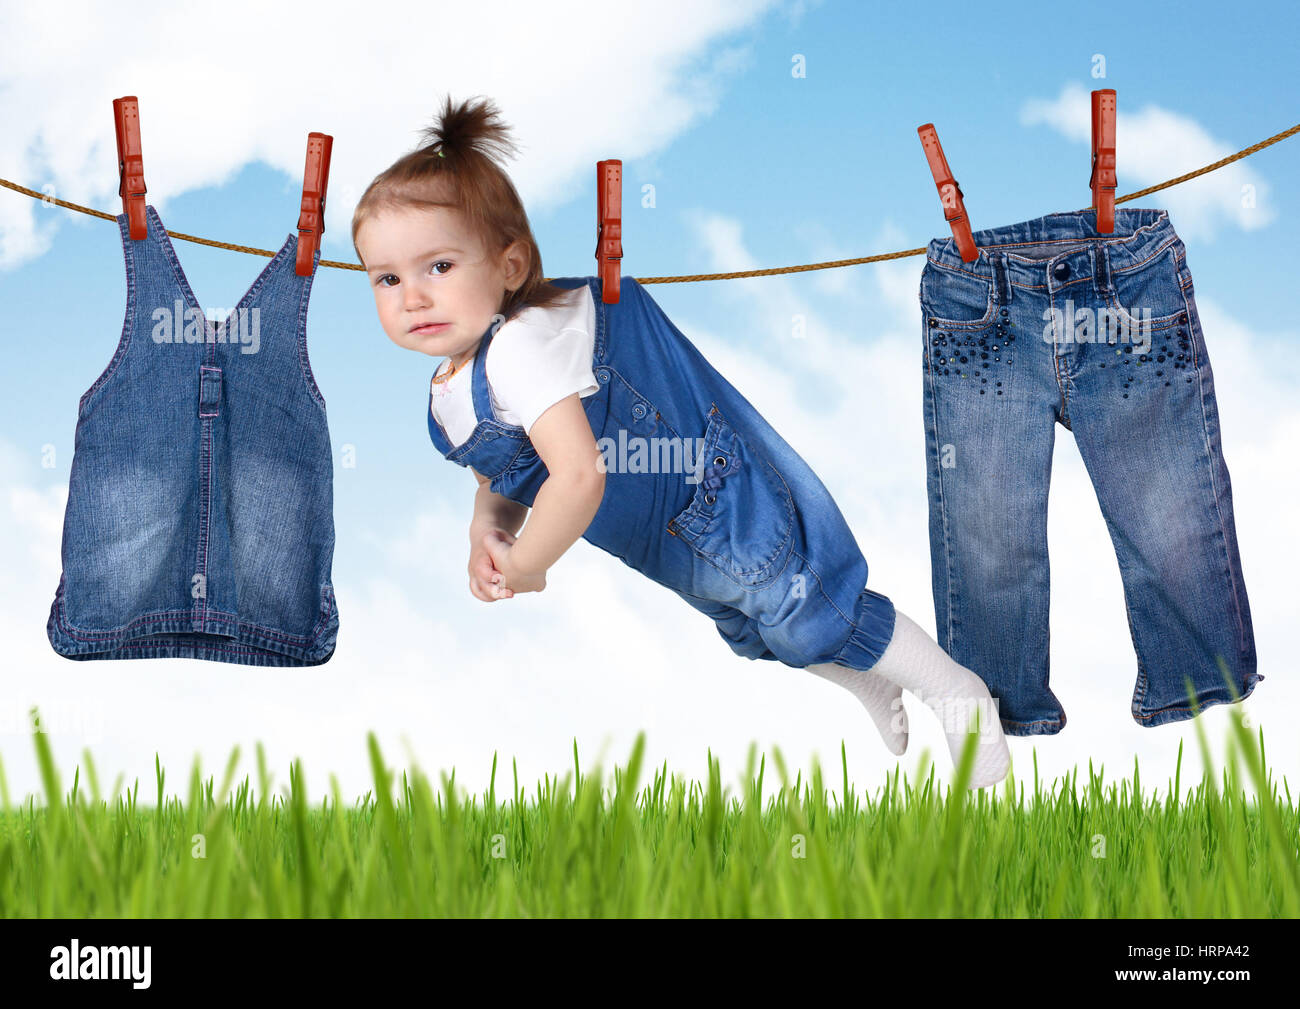 confused housework concept, Funny child hanging on clothesline - Stock Image